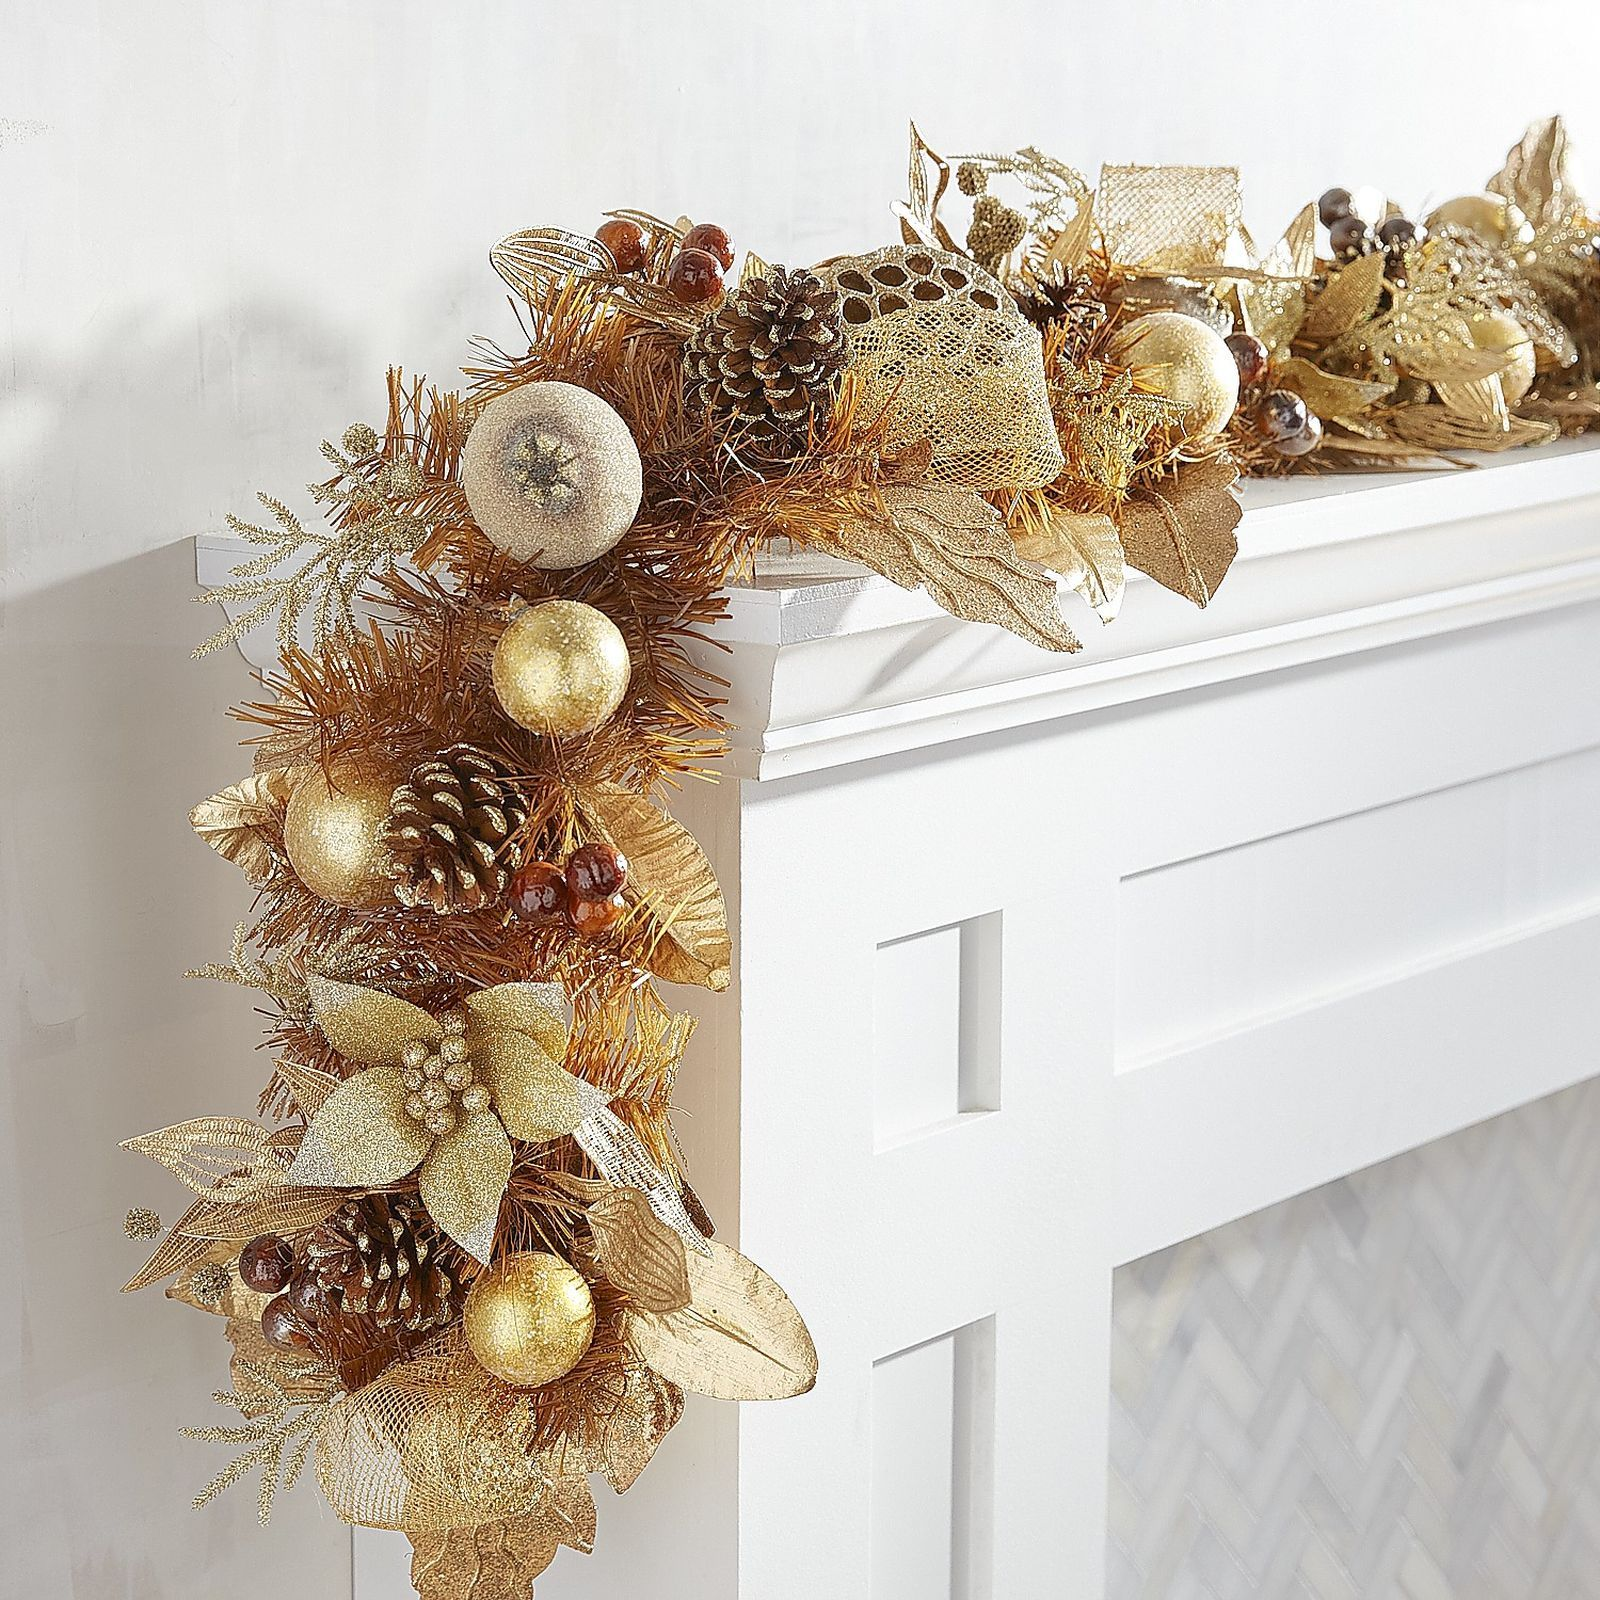 Make Your Mantel Or Staircase The Showplace Of The Season With Garland That Speaks To Your Interpreta Christmas Floral Decor Christmas Garland Christmas Floral